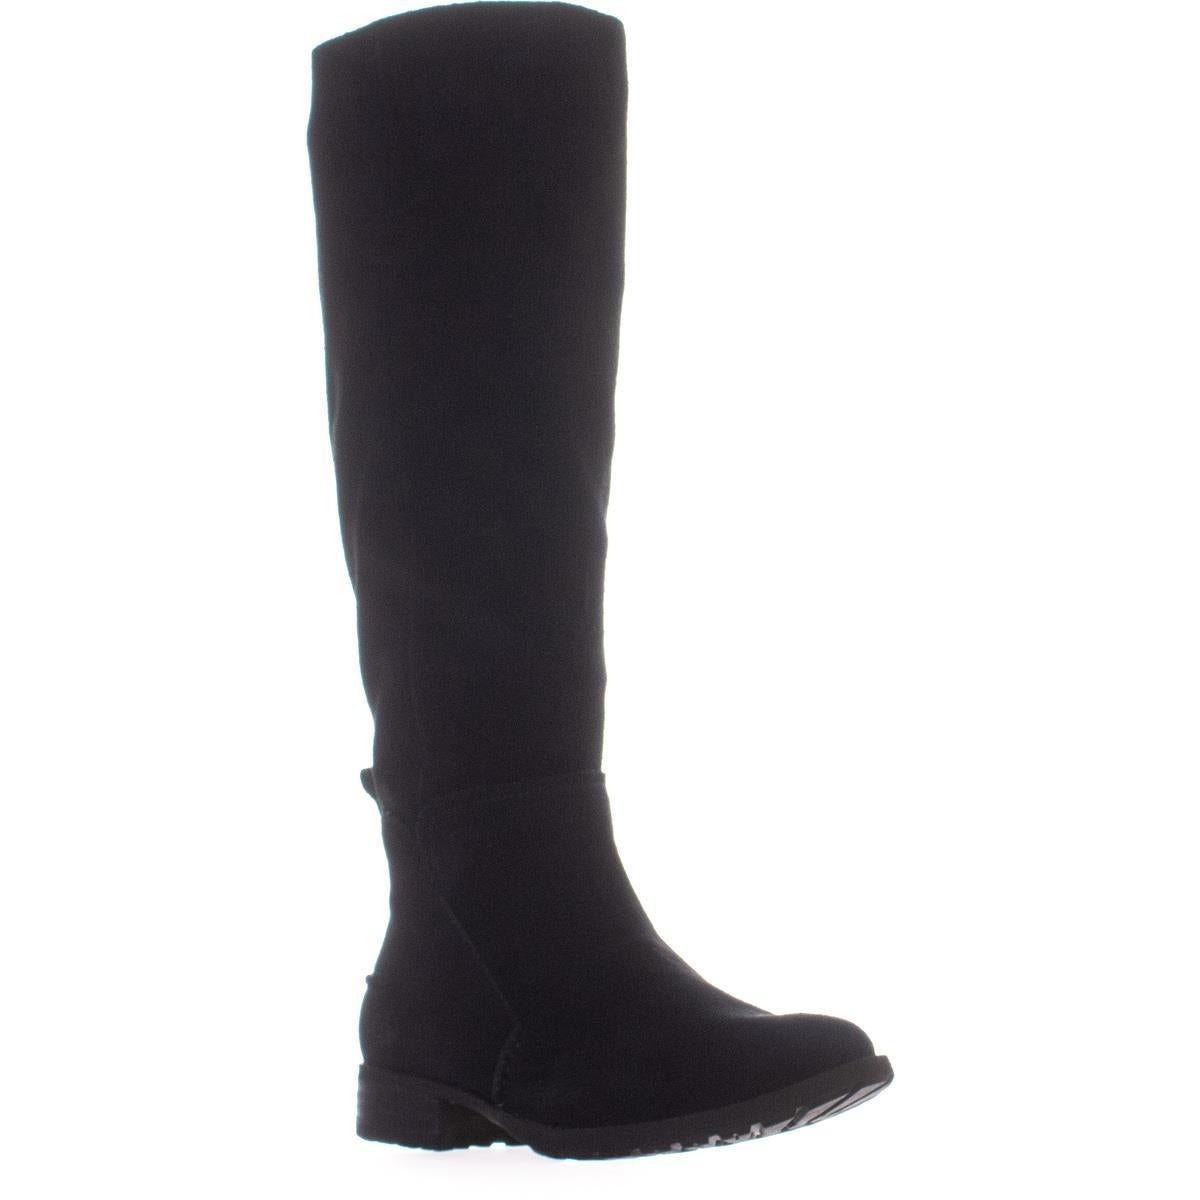 78fb704e2f0 UGG Leigh Knee High Boots, Black